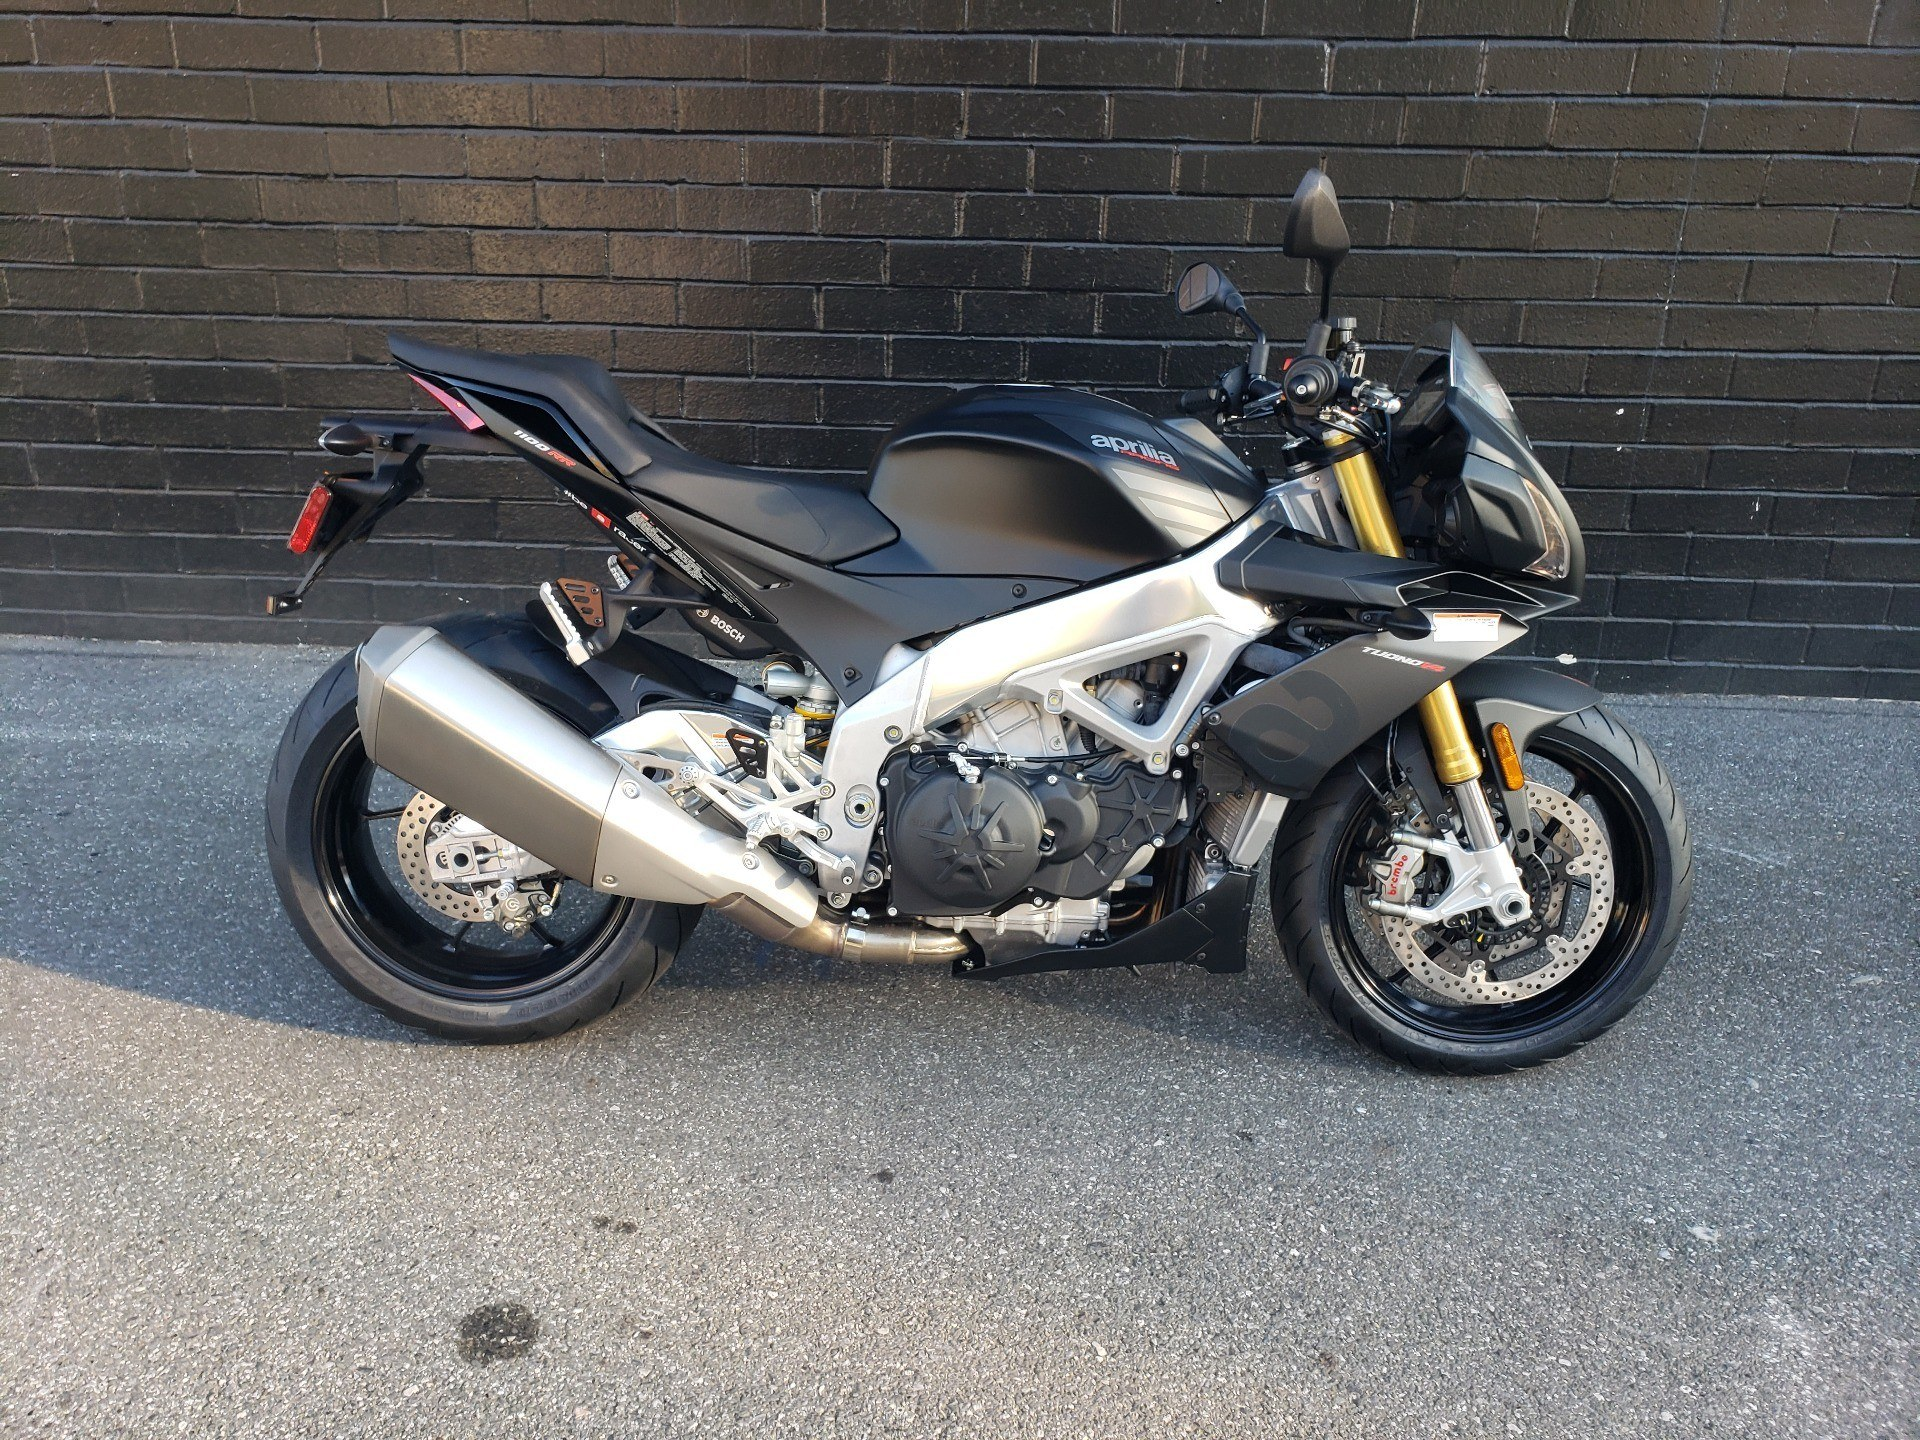 New 2020 Aprilia Tuono V4 1100 Rr Abs Motorcycles In San Jose Ca Stock Number Aa0059